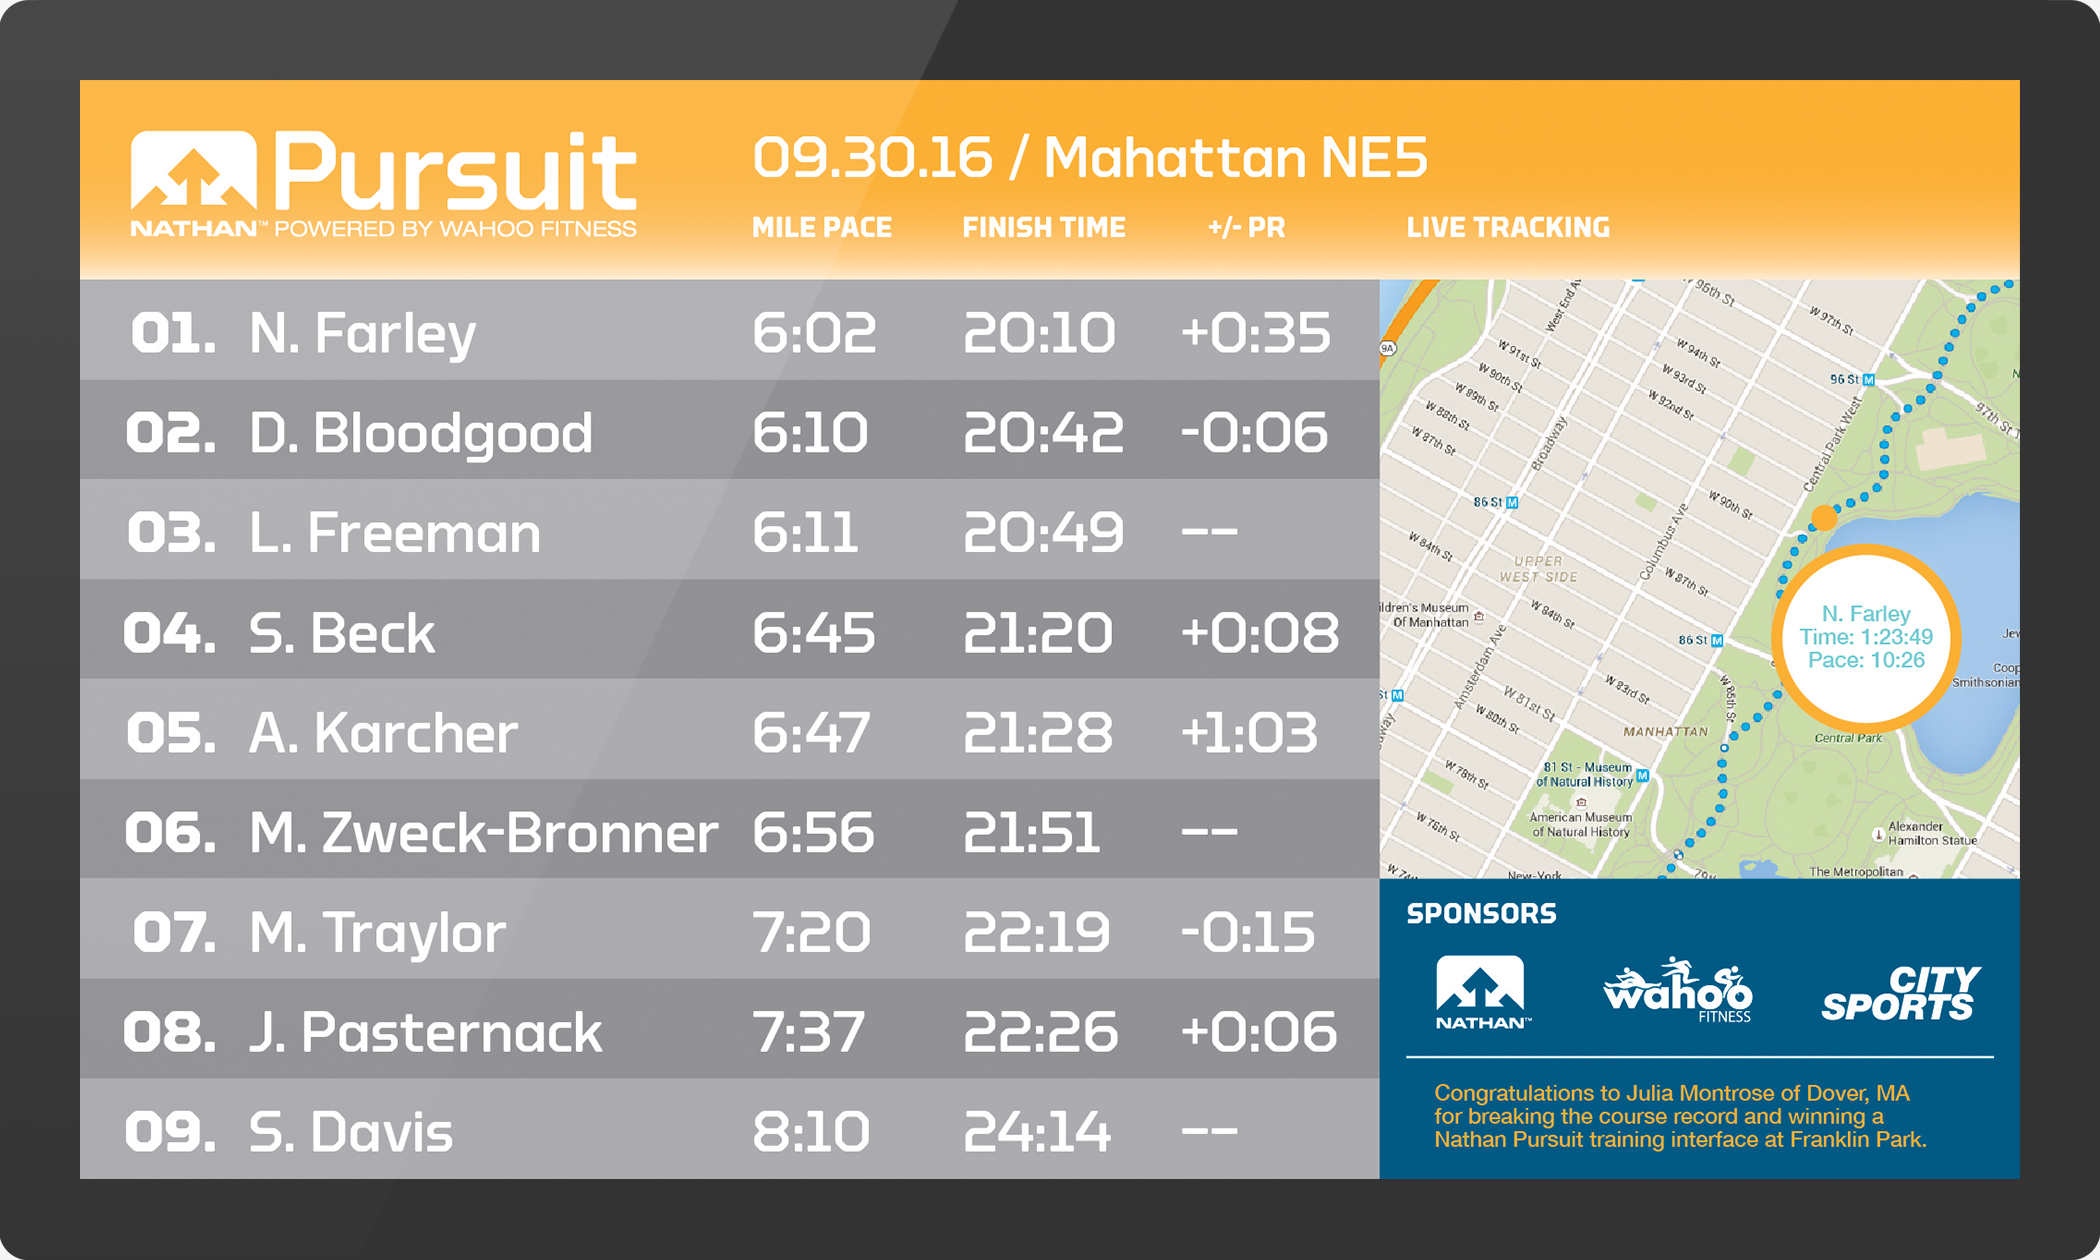 Screenshot of Nathan Sports Pursuit app interface showing a list of race times for multiple runners.